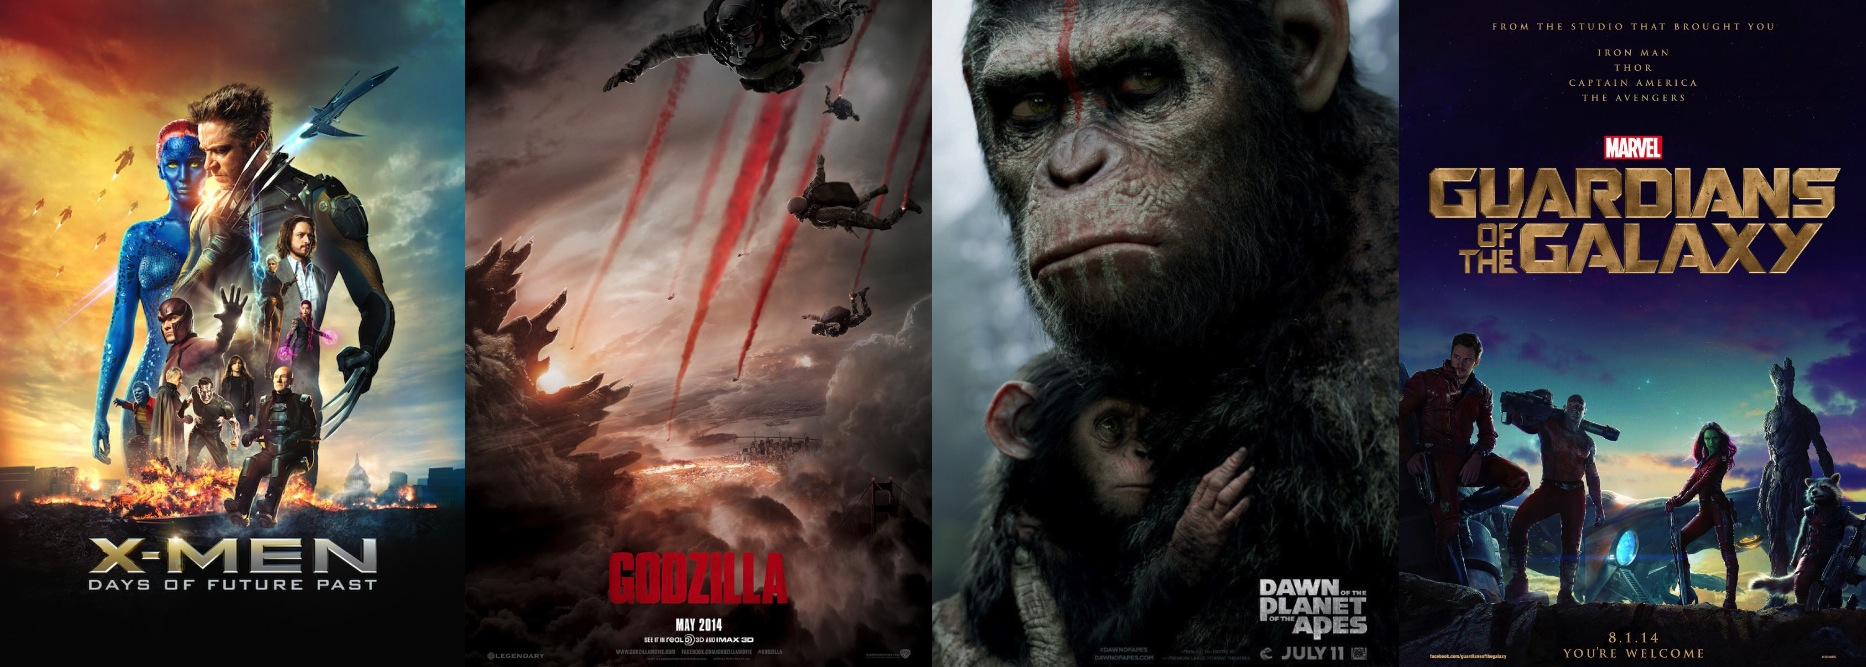 X-Men: Days of Future Past, Godzilla (2014), Dawn of the Planet of the Apes, Marvel's Guardians of the Galaxy